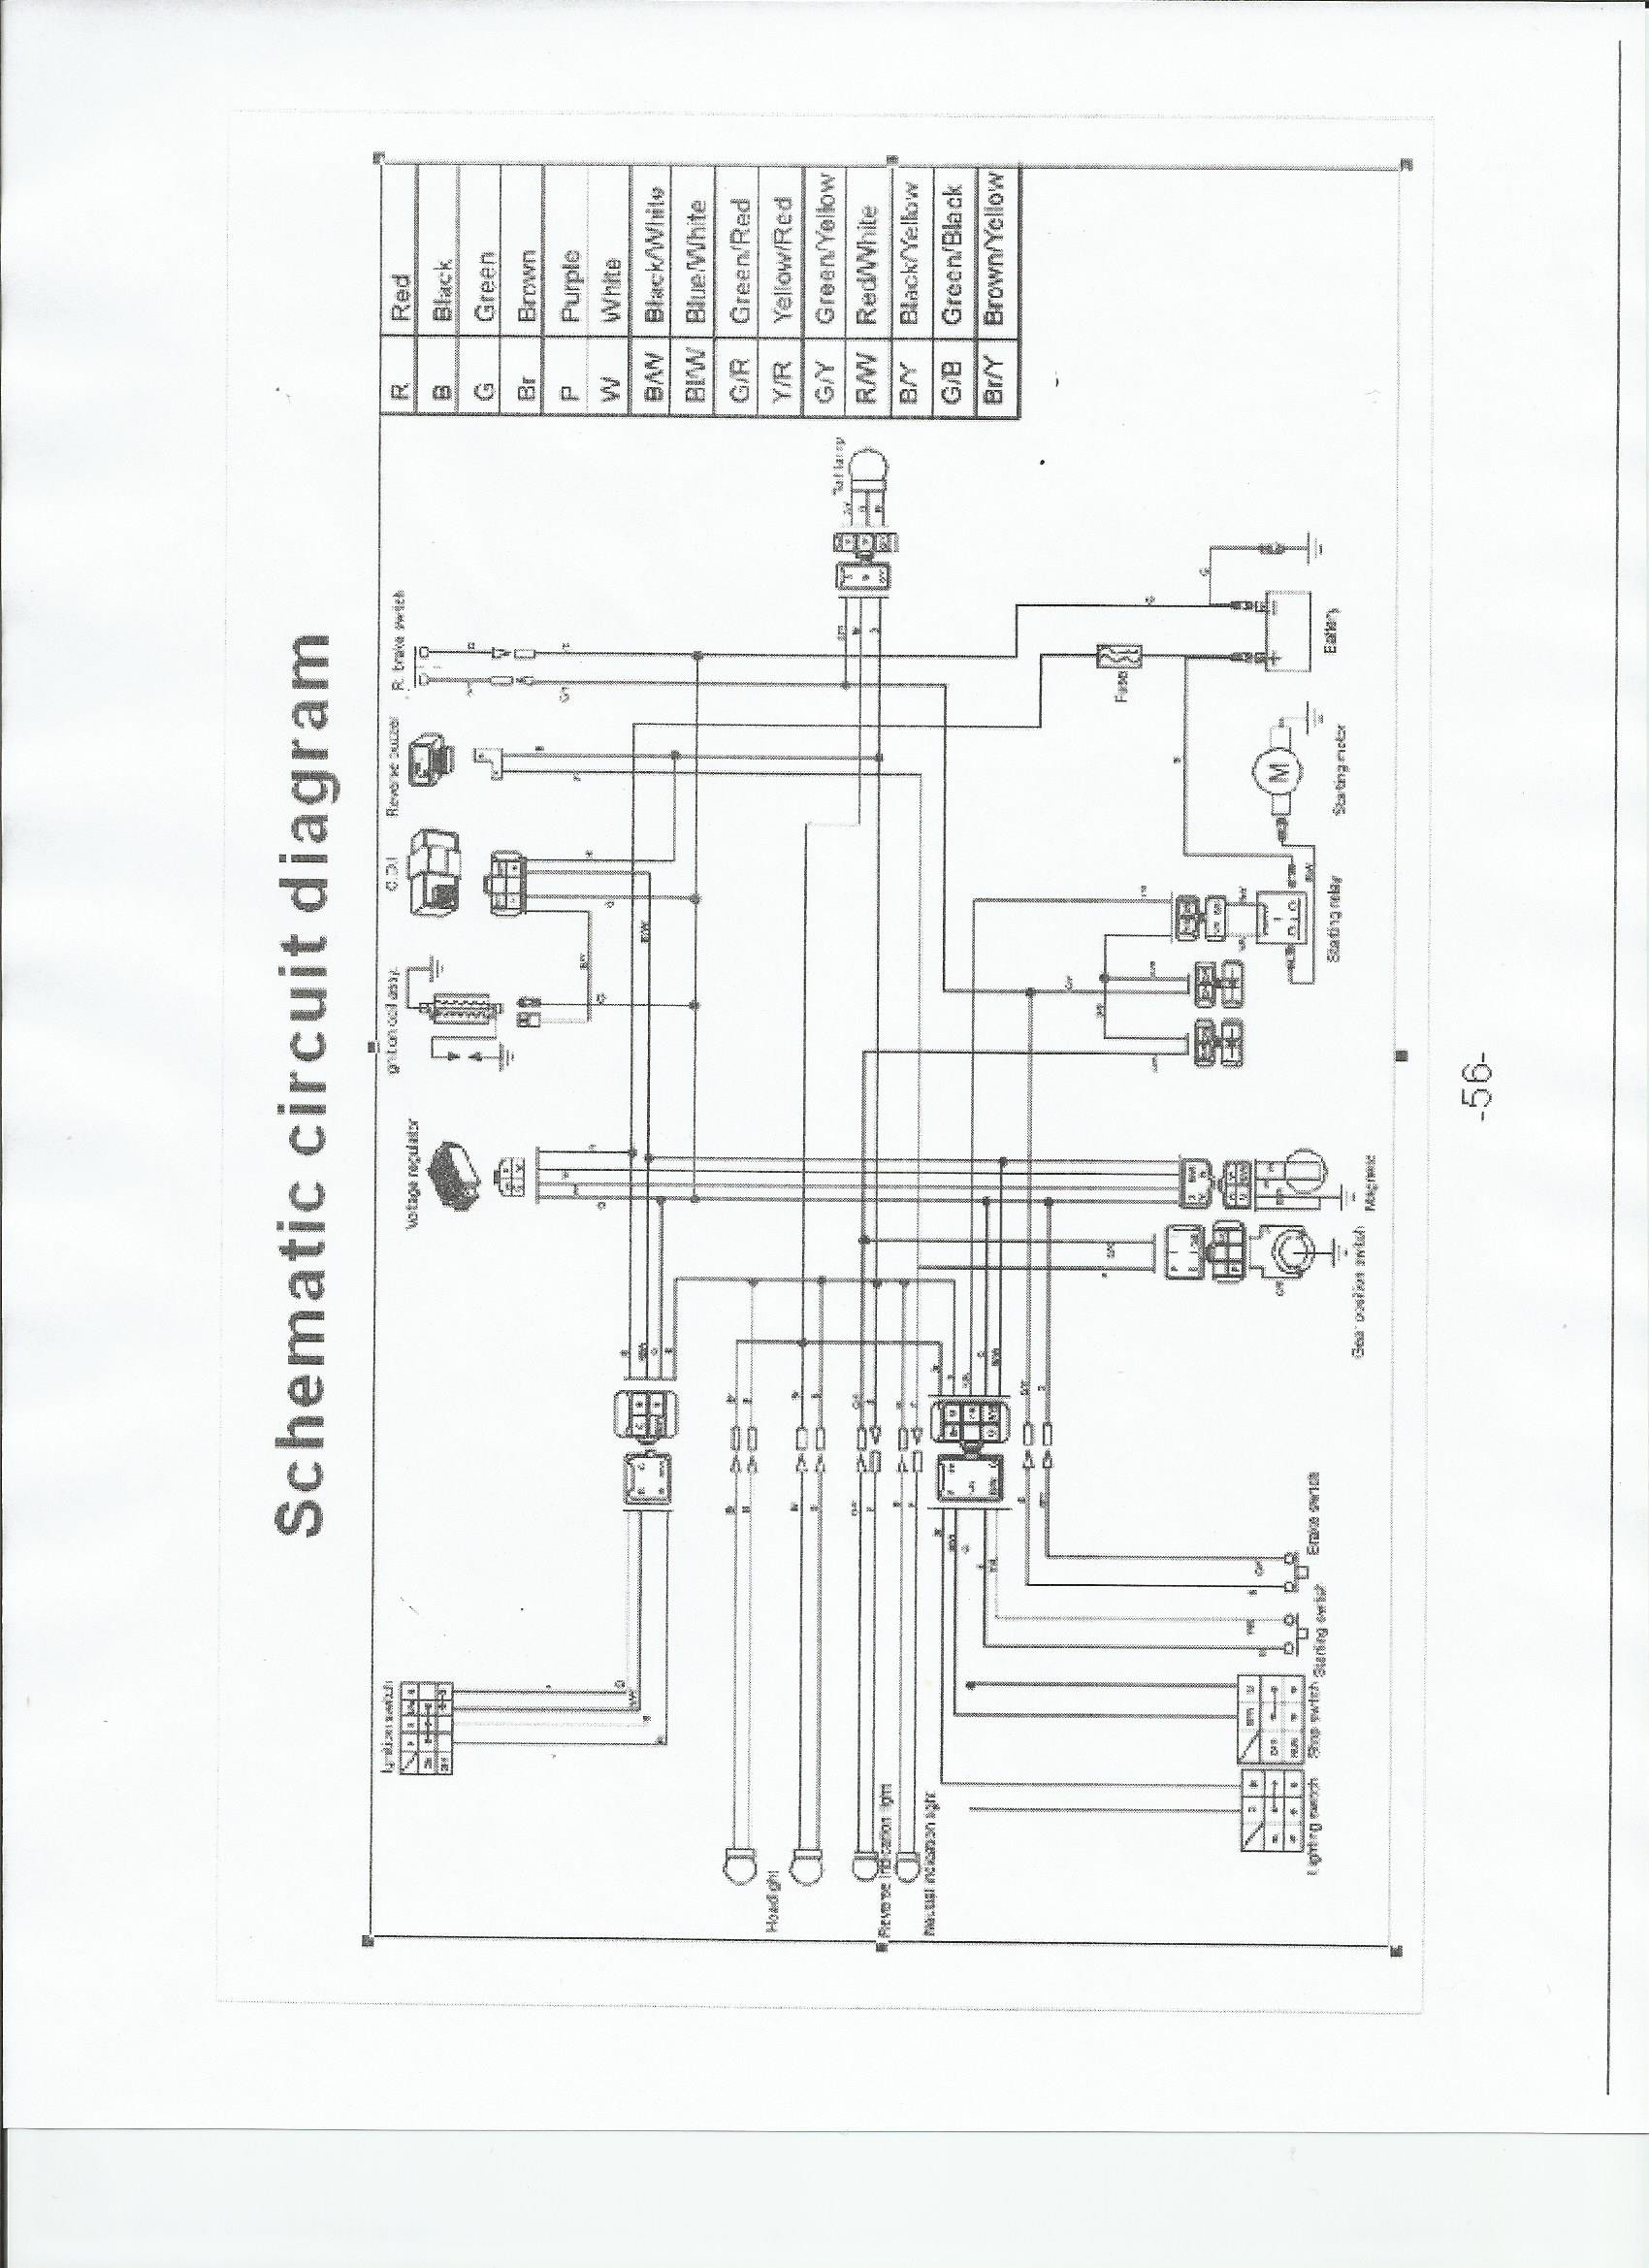 hight resolution of simple wiring diagram kazuma schematic diagram datasimple wiring diagram kazuma diagram data schema kazuma 50cc atv